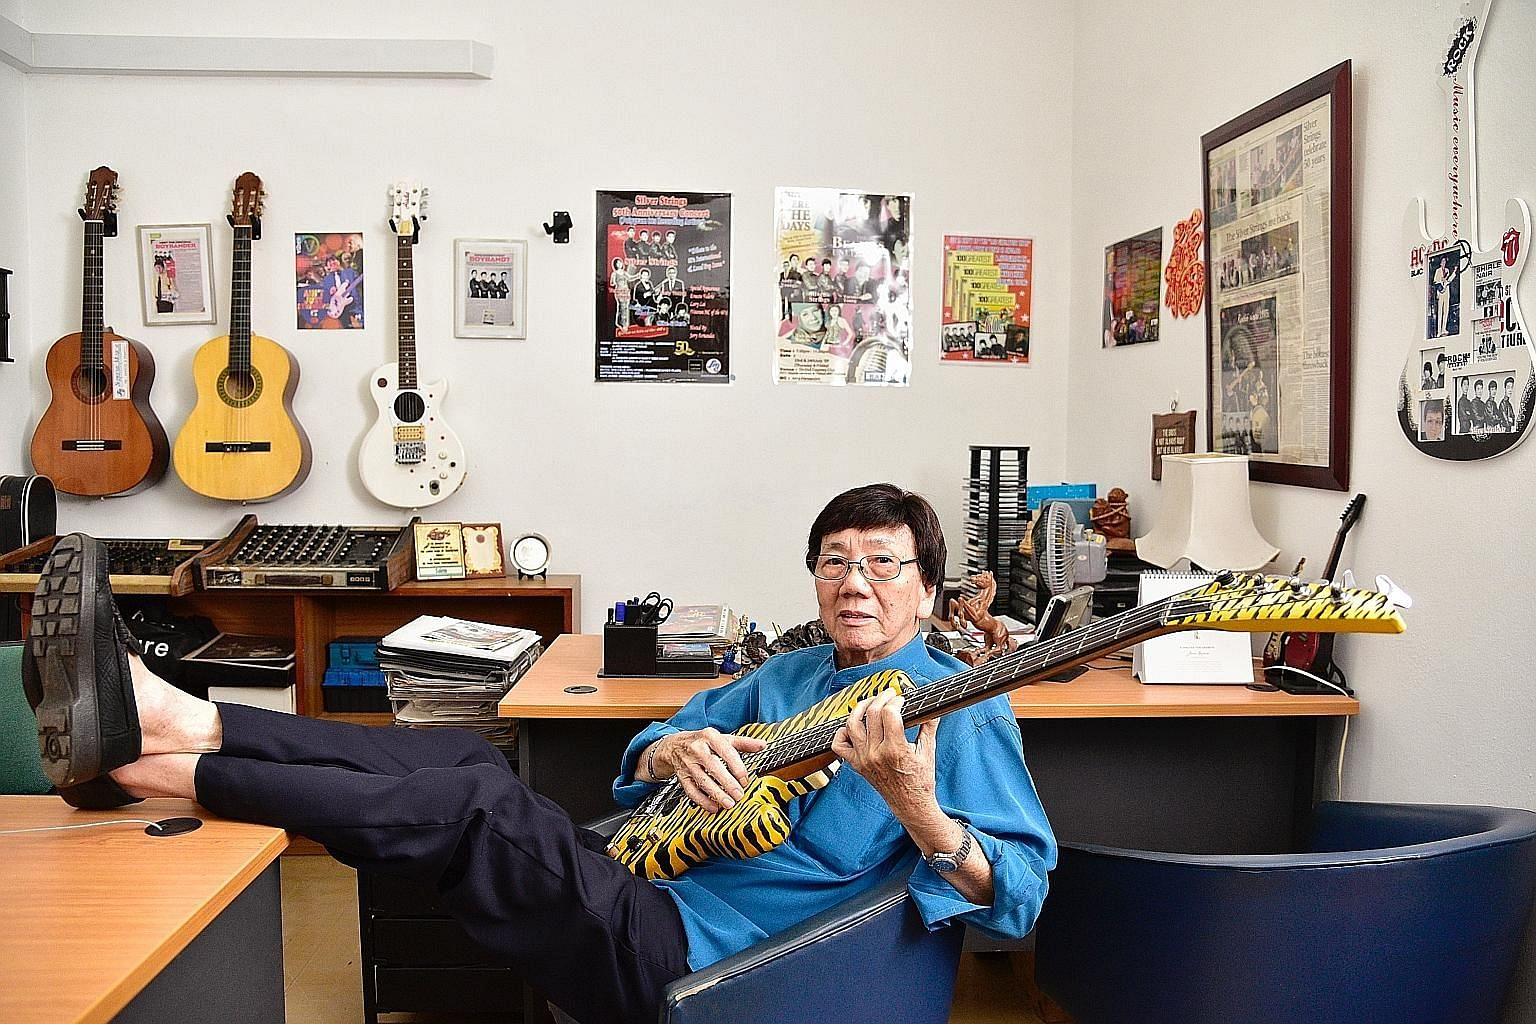 Being the opening act for The Rolling Stones in 1965 opened many doors for The Silver Strings. The Singapore band went on to record 12 original songs and also toured Malaysia. The Silver Strings was a big part of Mr Audie Ng's youth and will always b